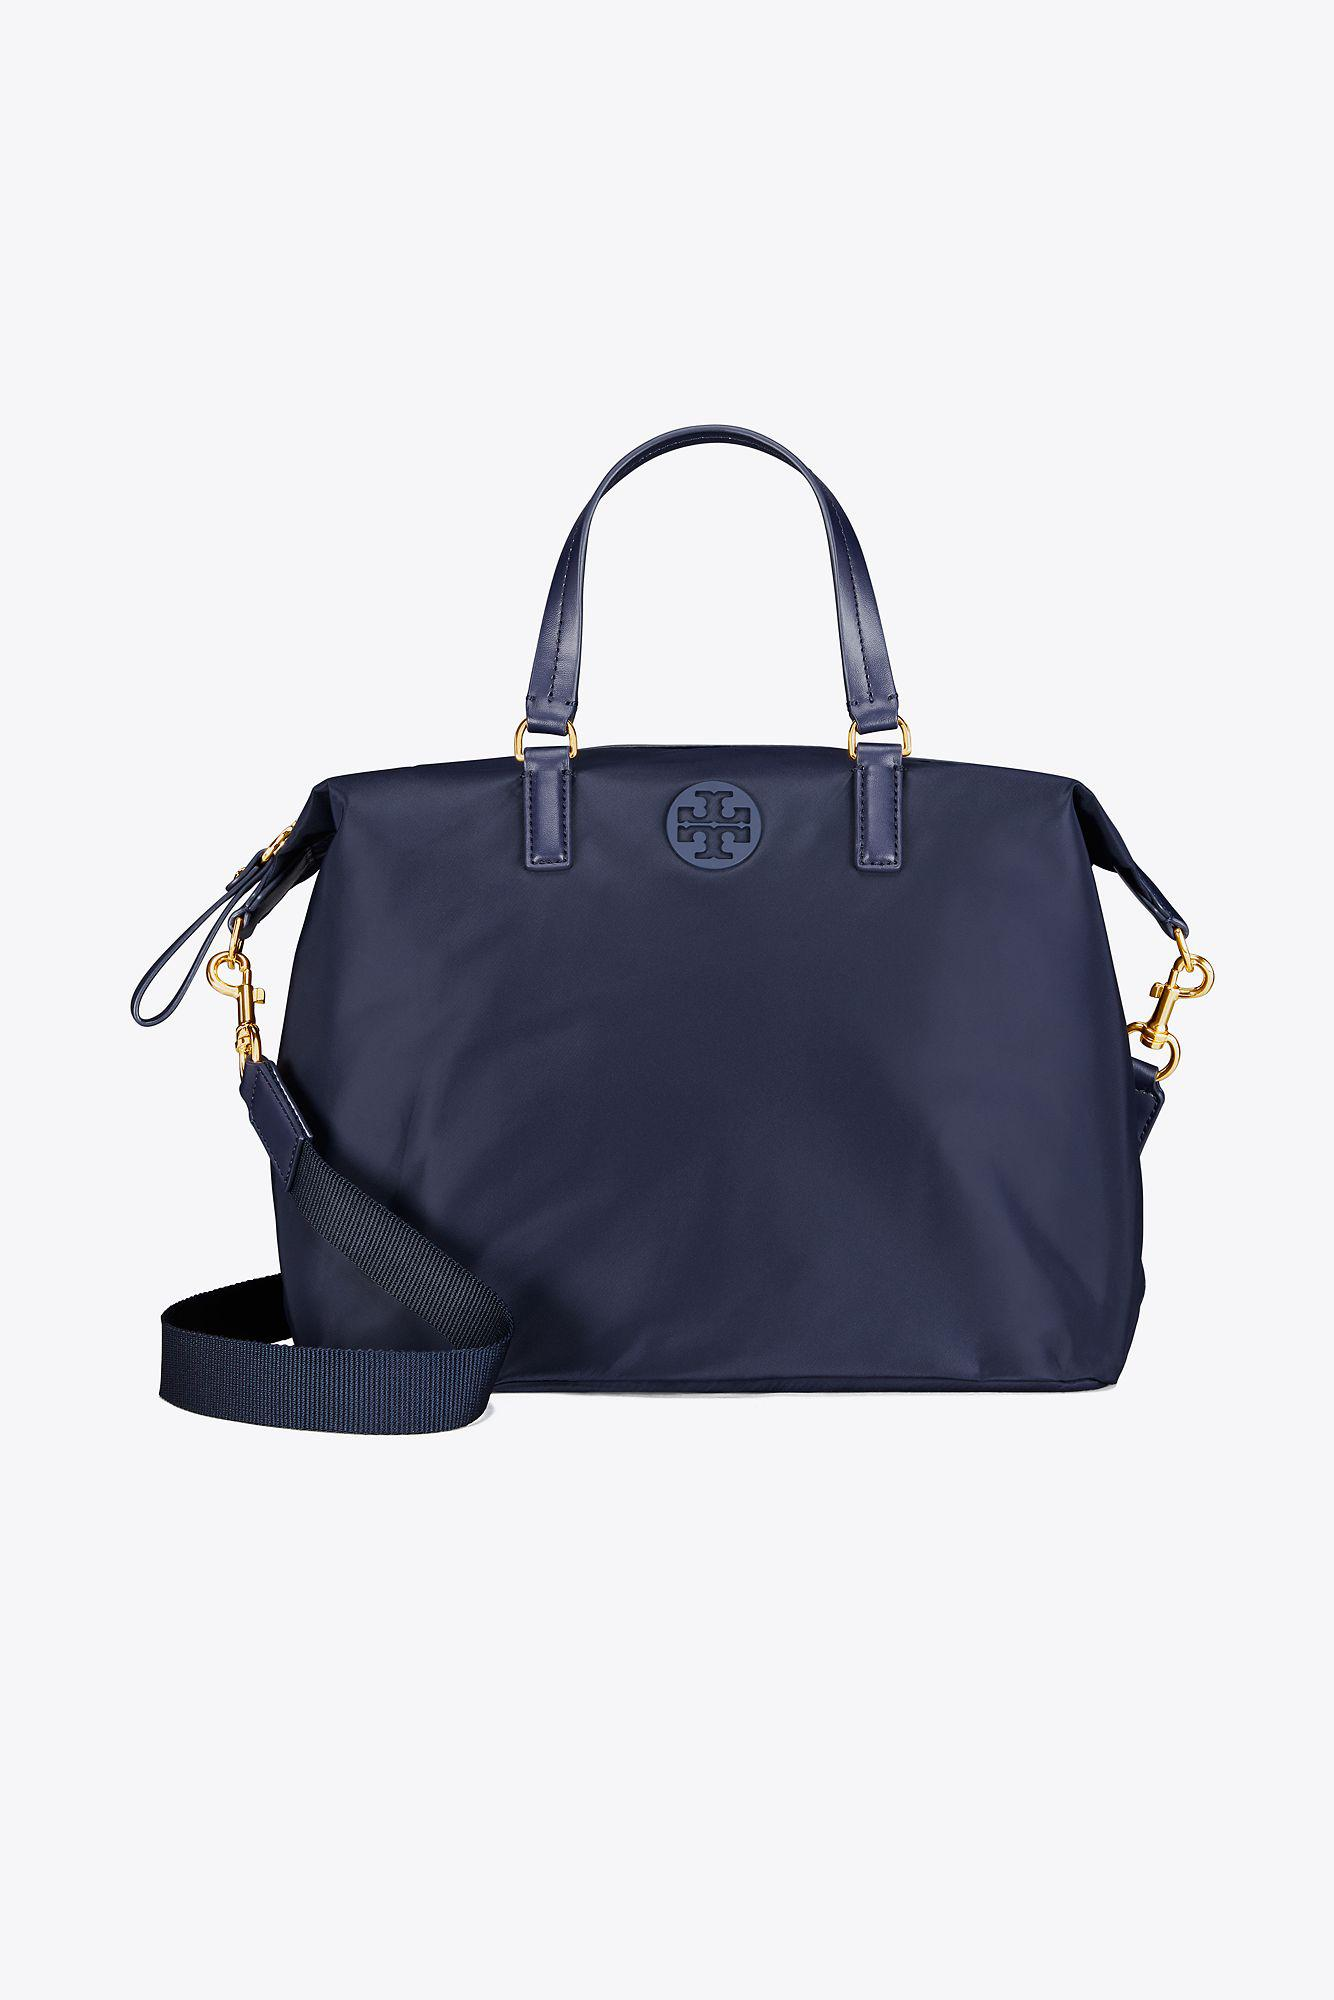 106b61e2ea2 Tory Burch Tilda Nylon Slouchy Satchel in Blue - Lyst